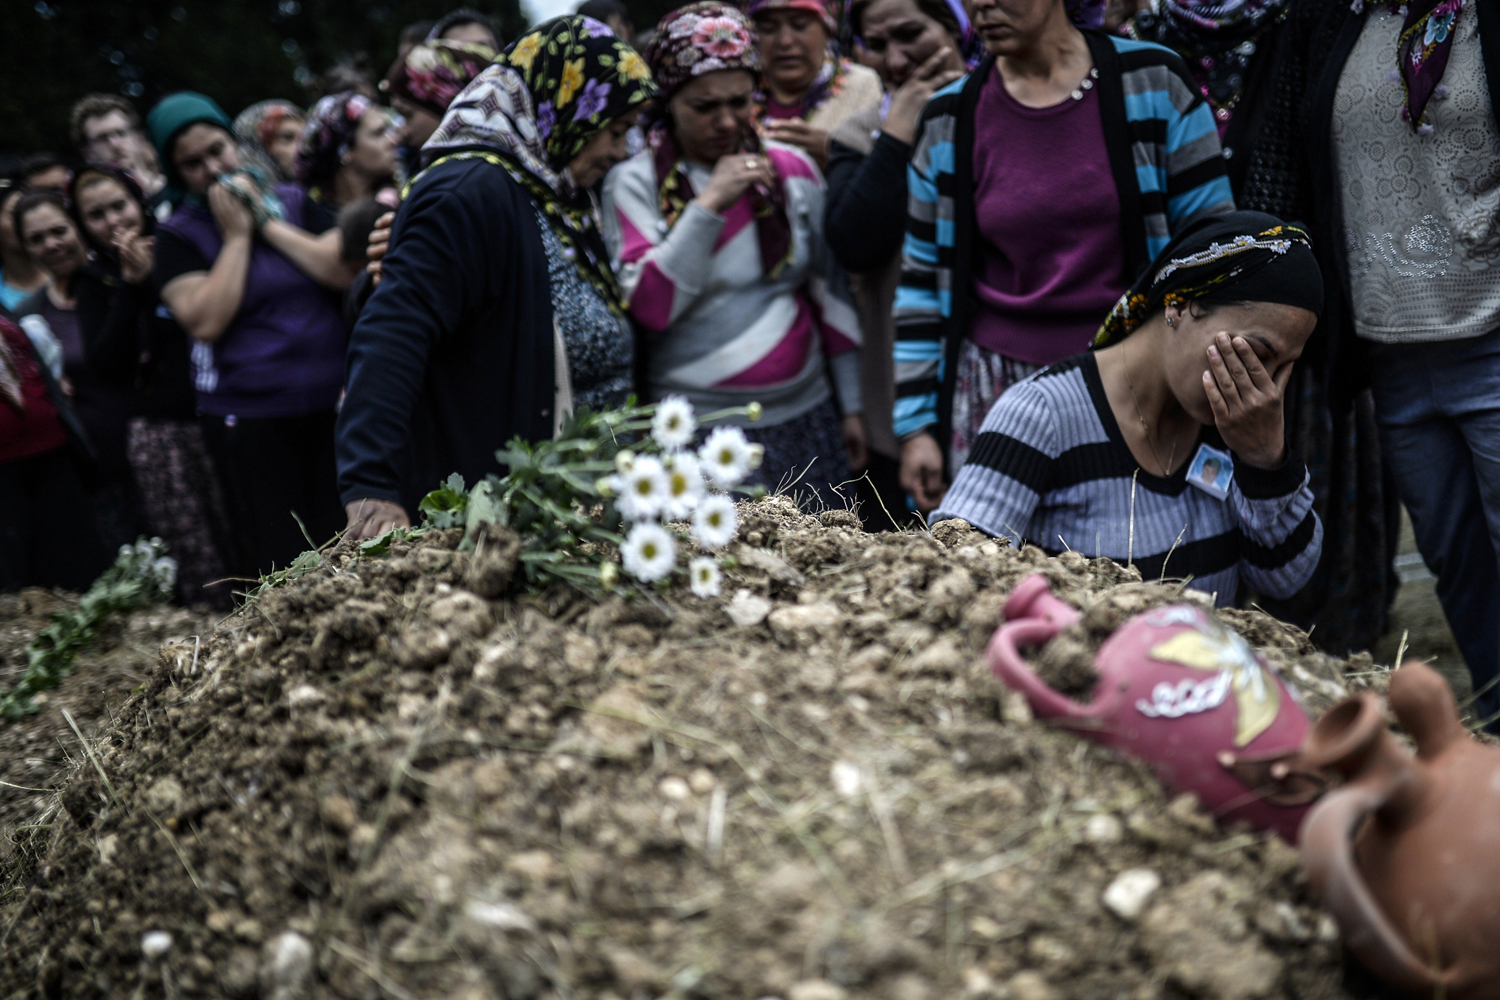 May 15, 2014. Duygu Colak, holds soil from her husband Ugur's grave during a funeral ceremony in the western town of Soma in the Manisa province.